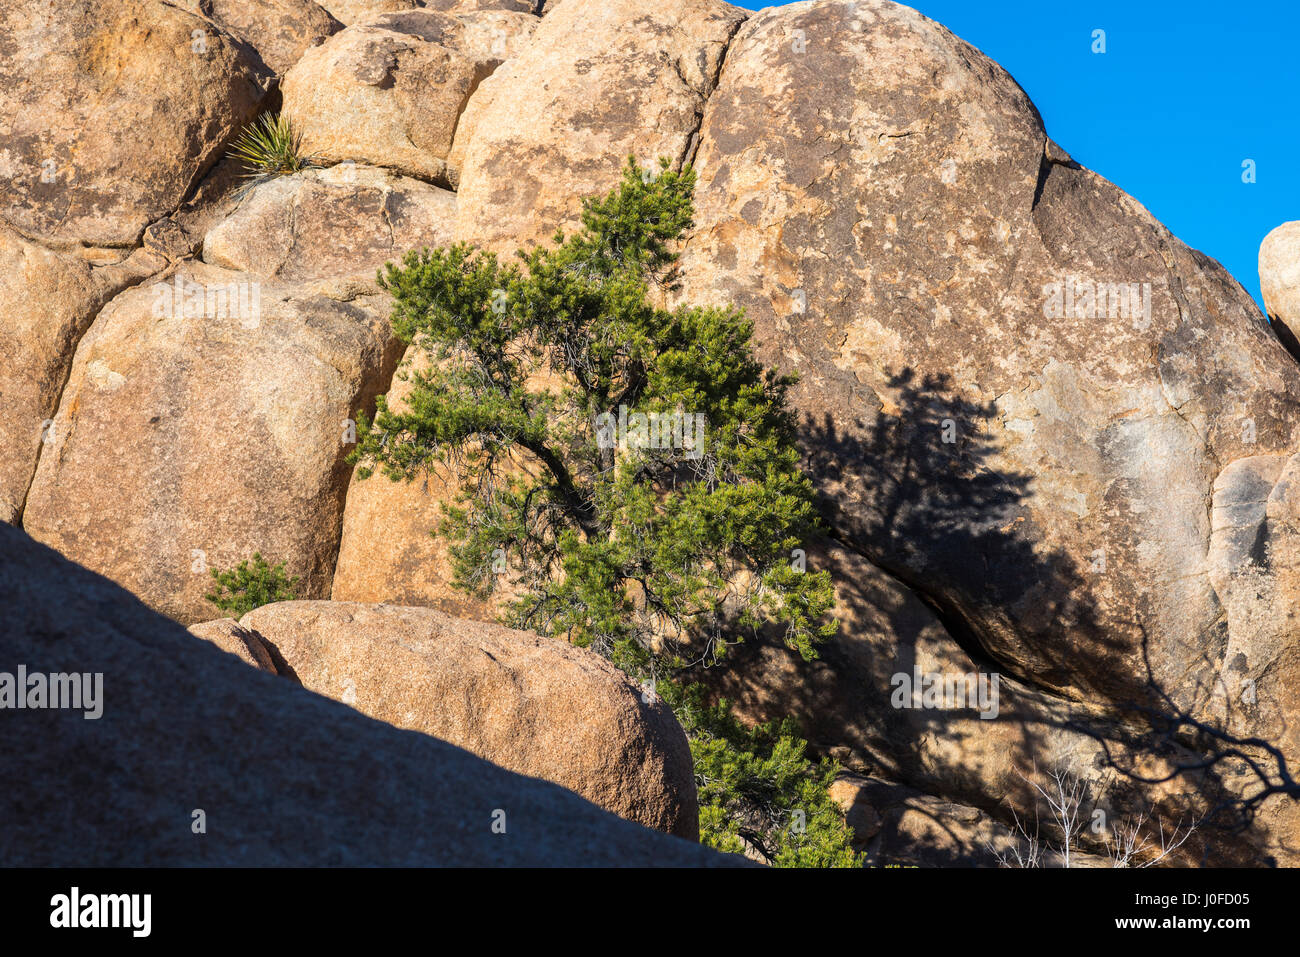 Pine tree among rock formations on the Barker Dam Loop Trail. Joshua Tree National Park, California, USA. - Stock Image